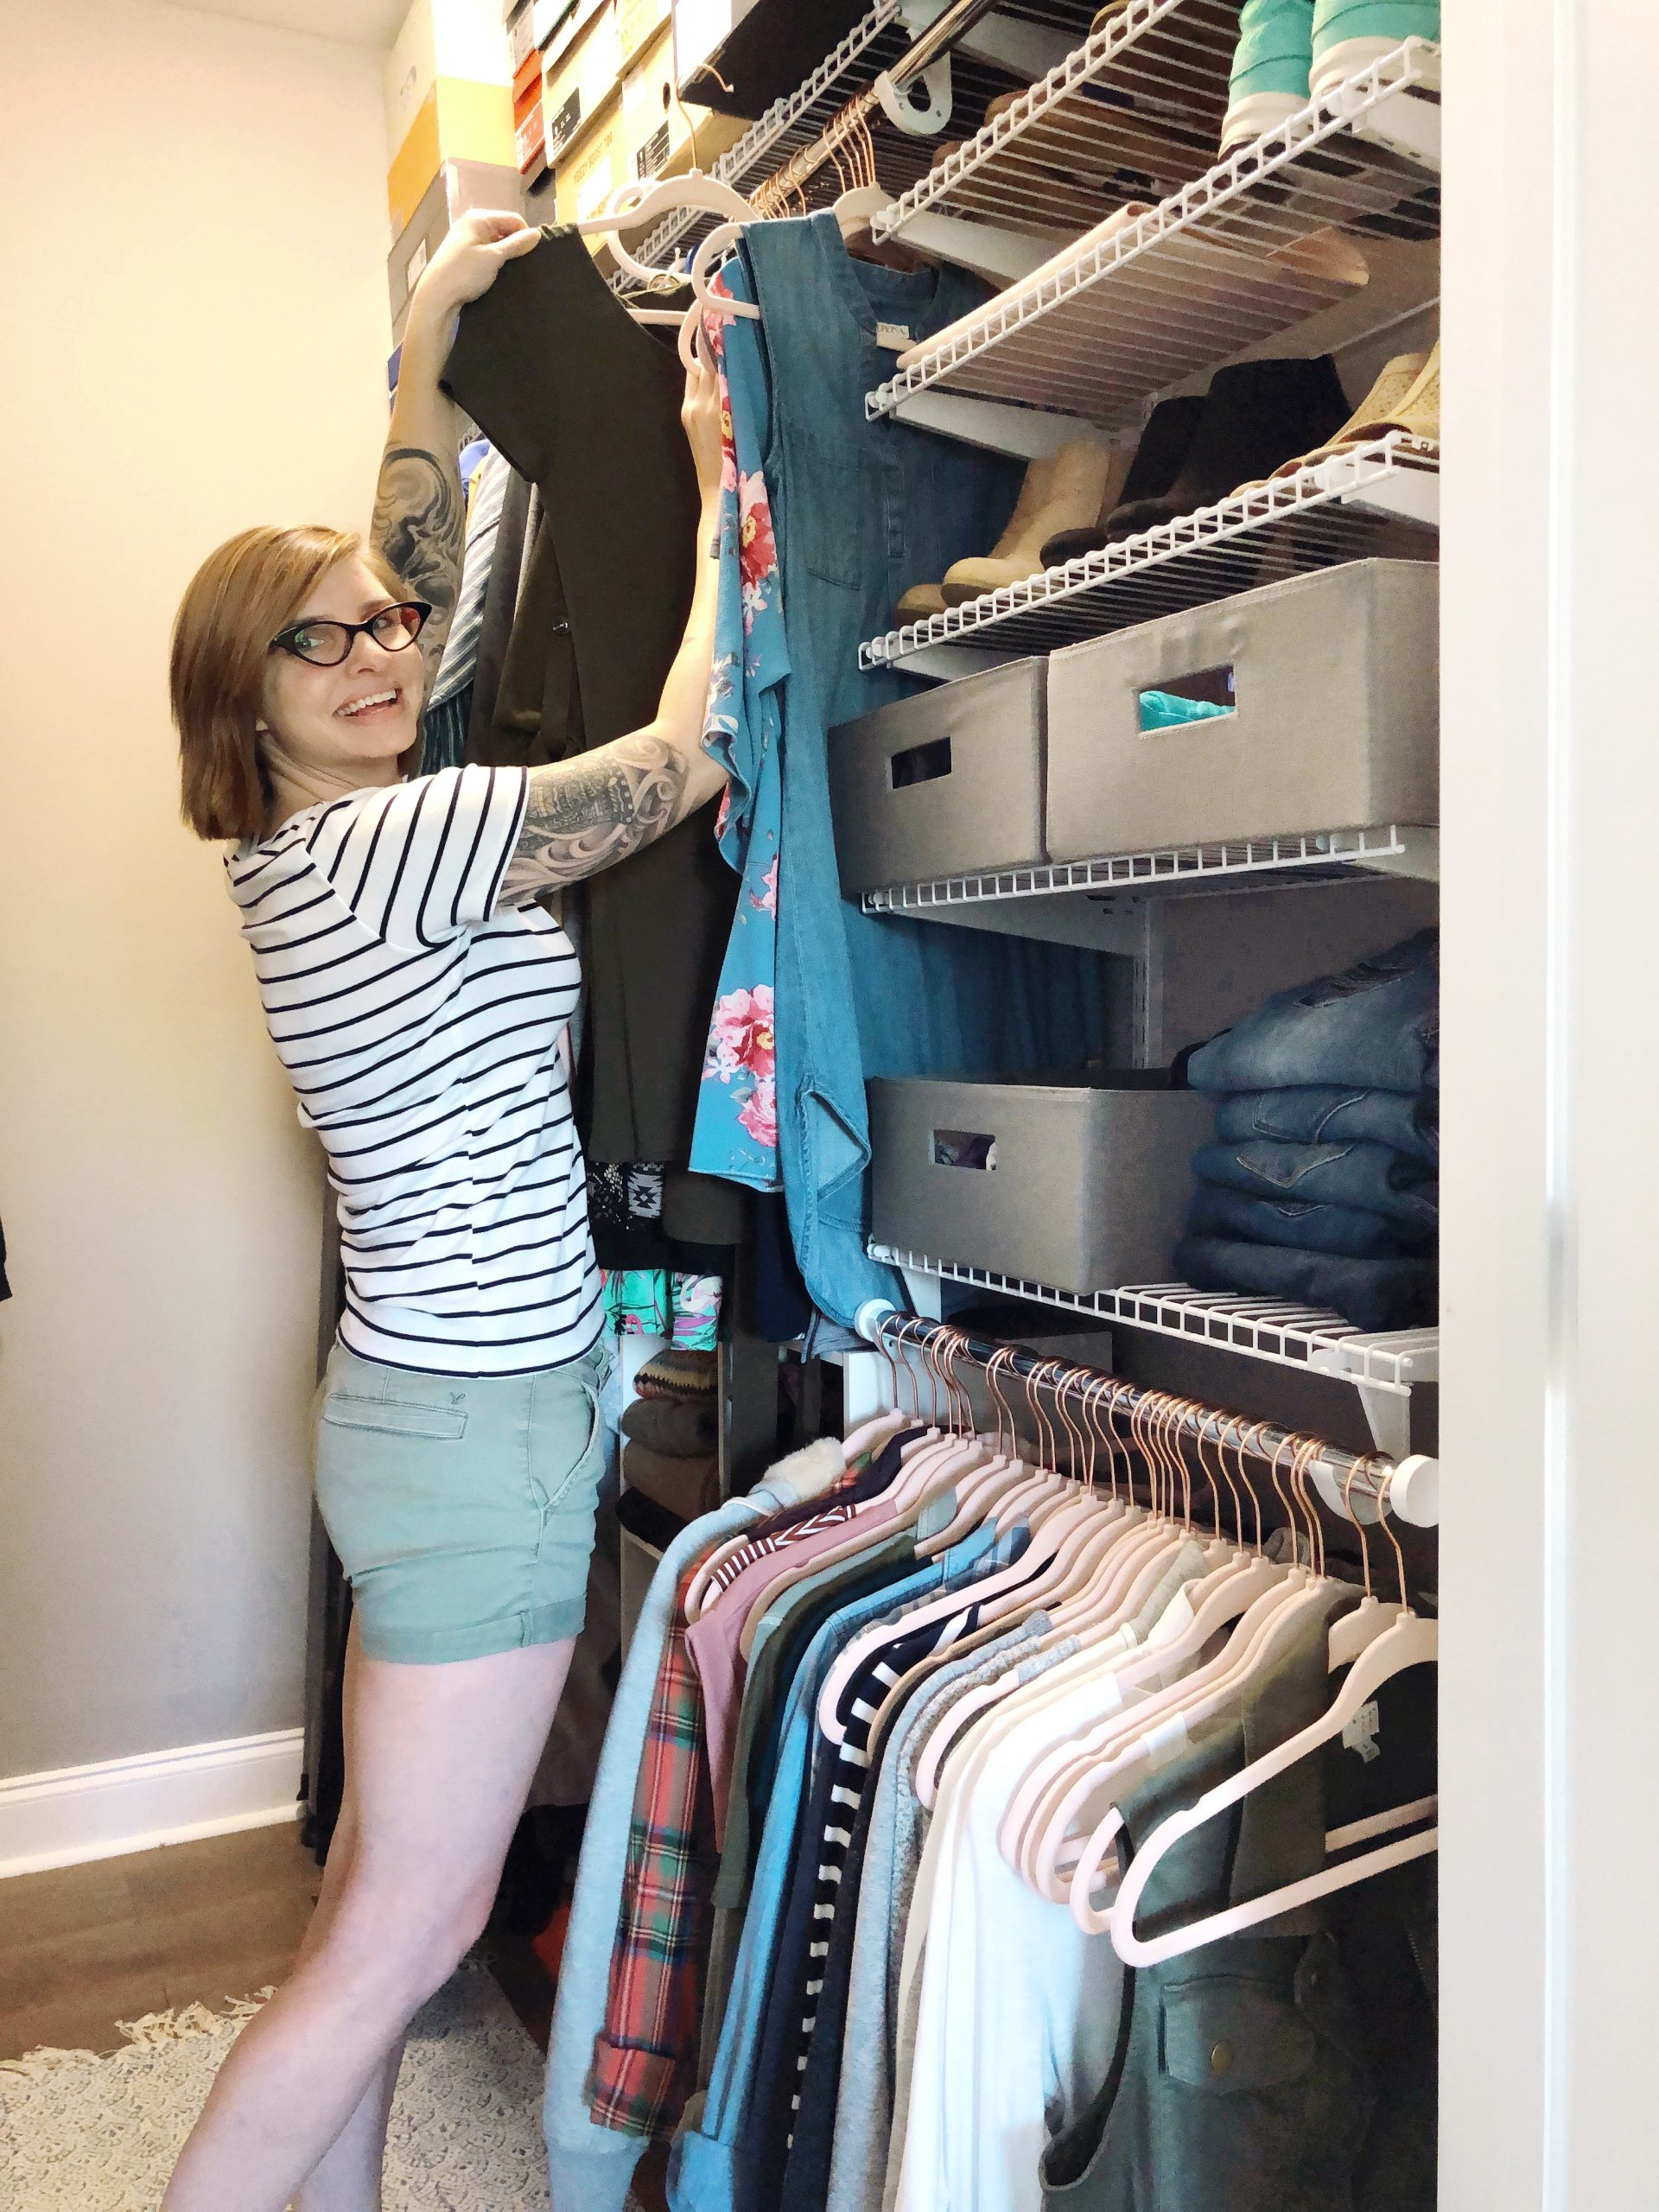 My Top 10 Best Organization Tips For Small Closets Organized Ish By Lela Burris